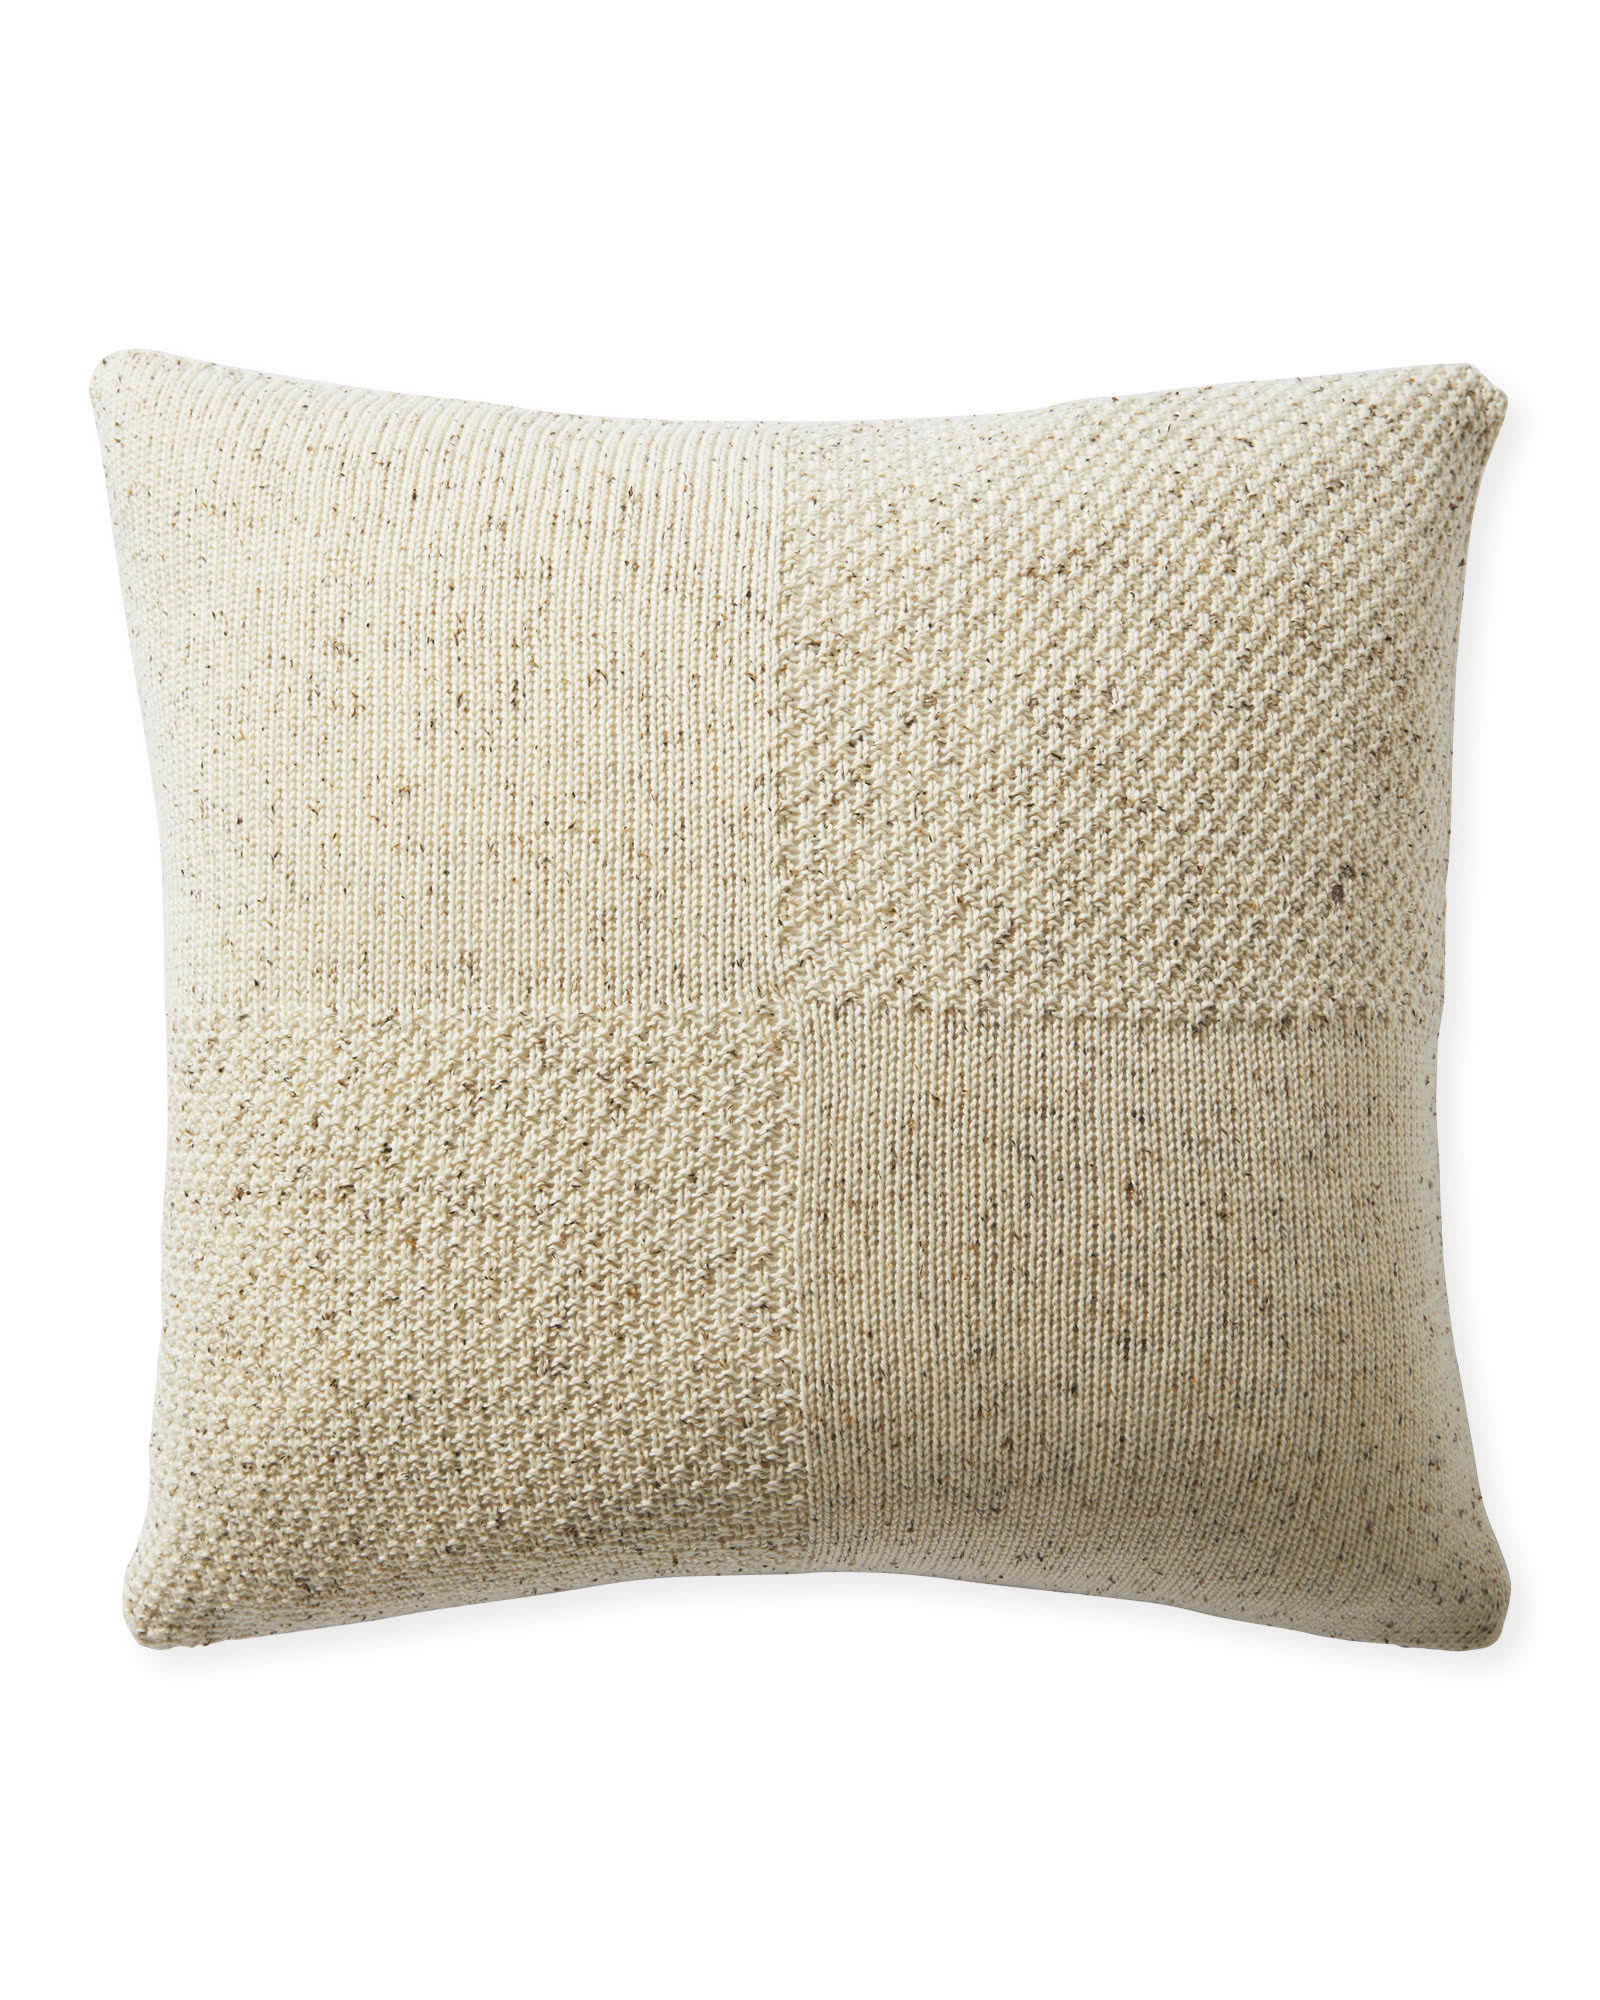 Shasta Pillow Cover, Ivory